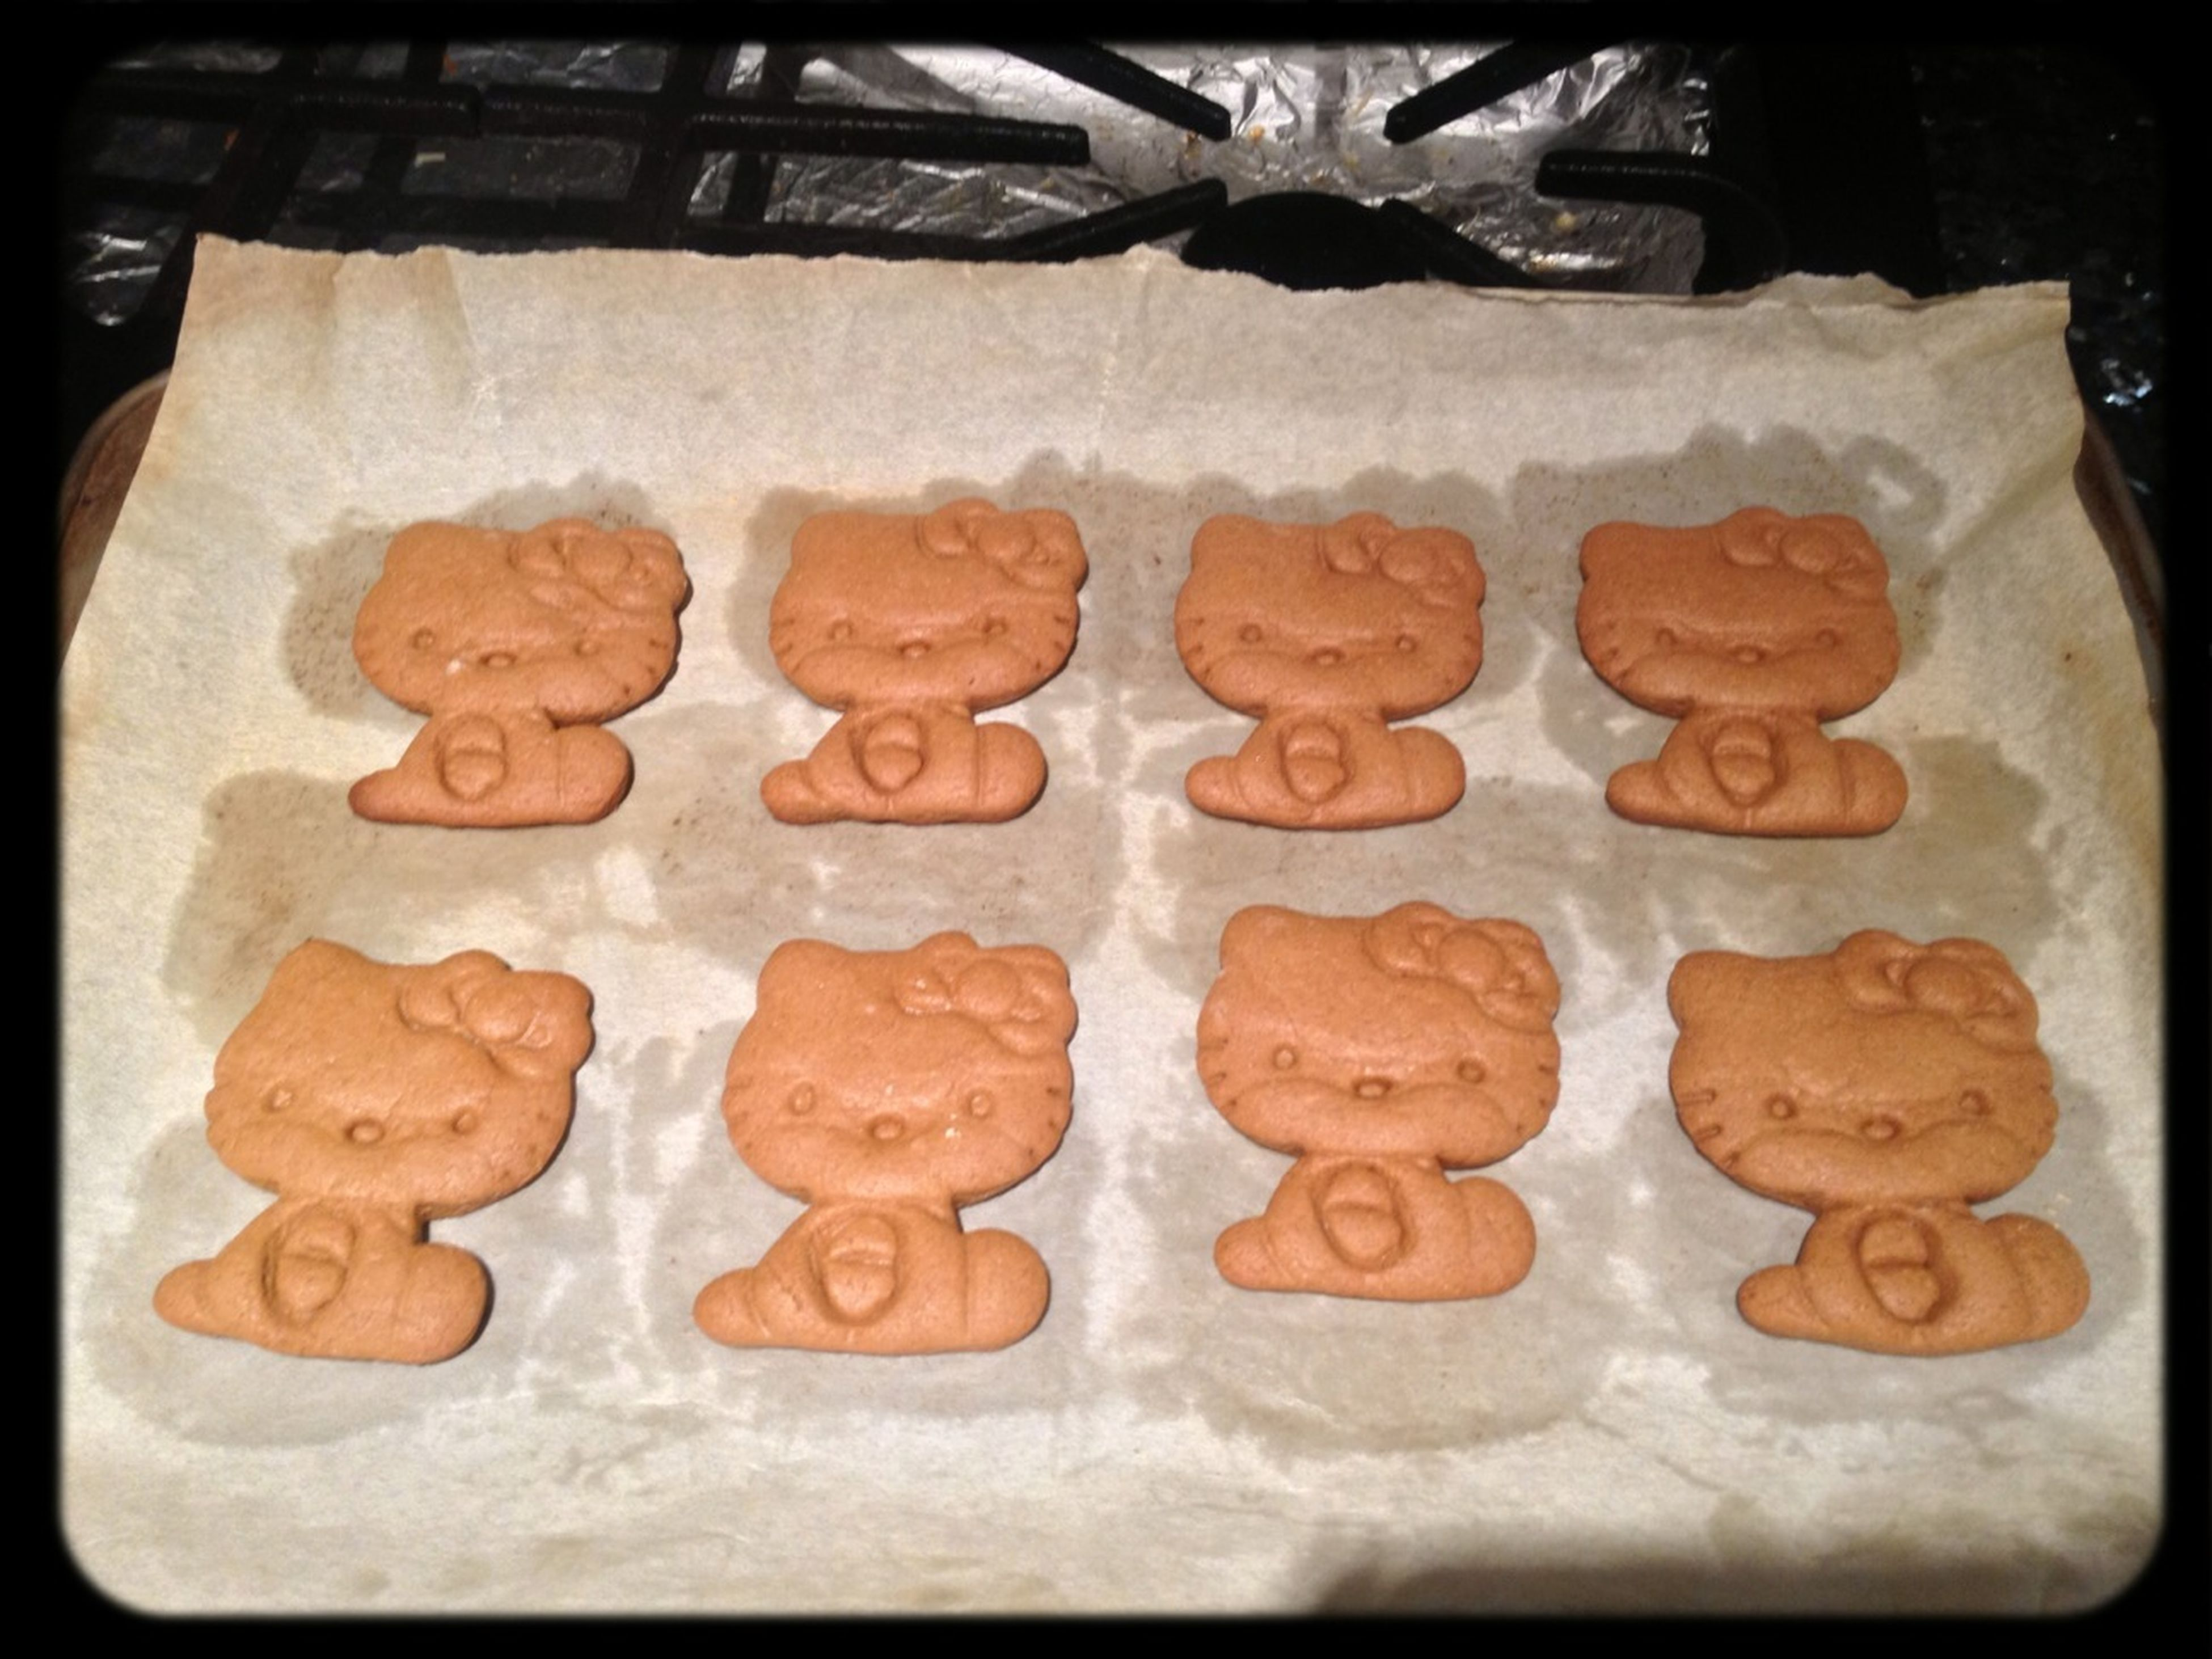 More Hello Kitty Gingerbread Cookies...